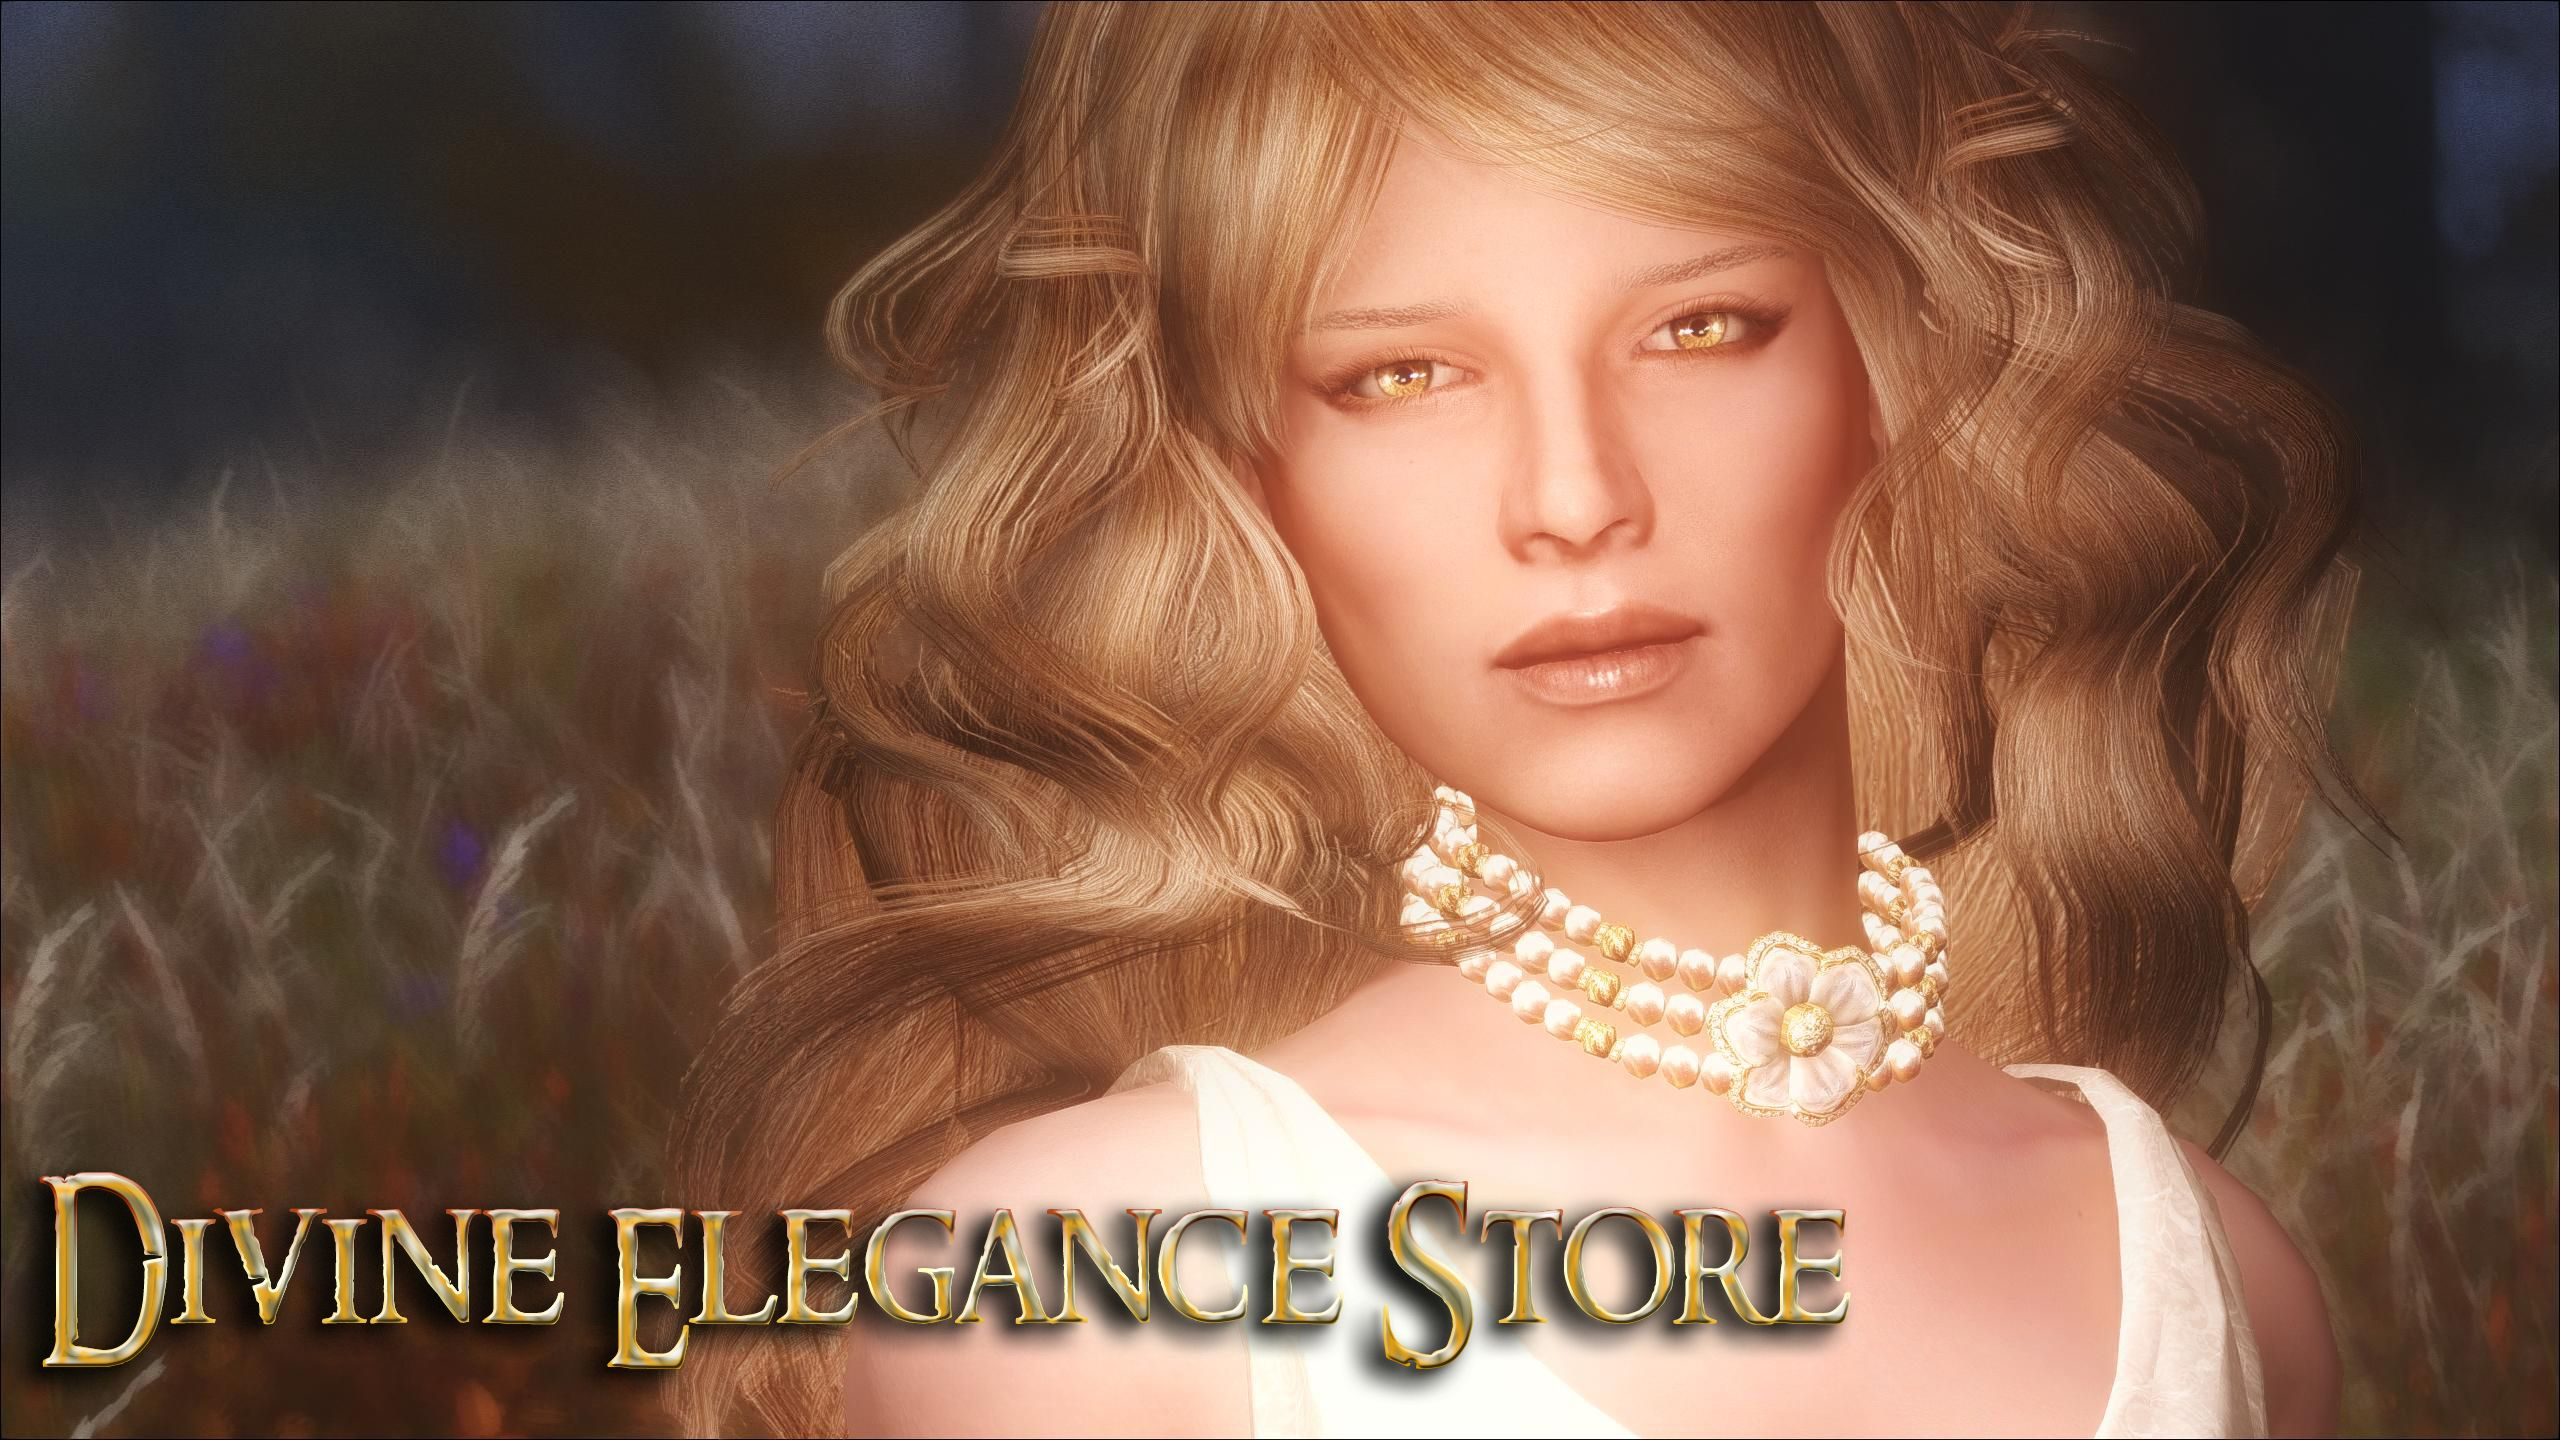 Apachii Divine Elegance Store by Apachii on Nexus adds tons